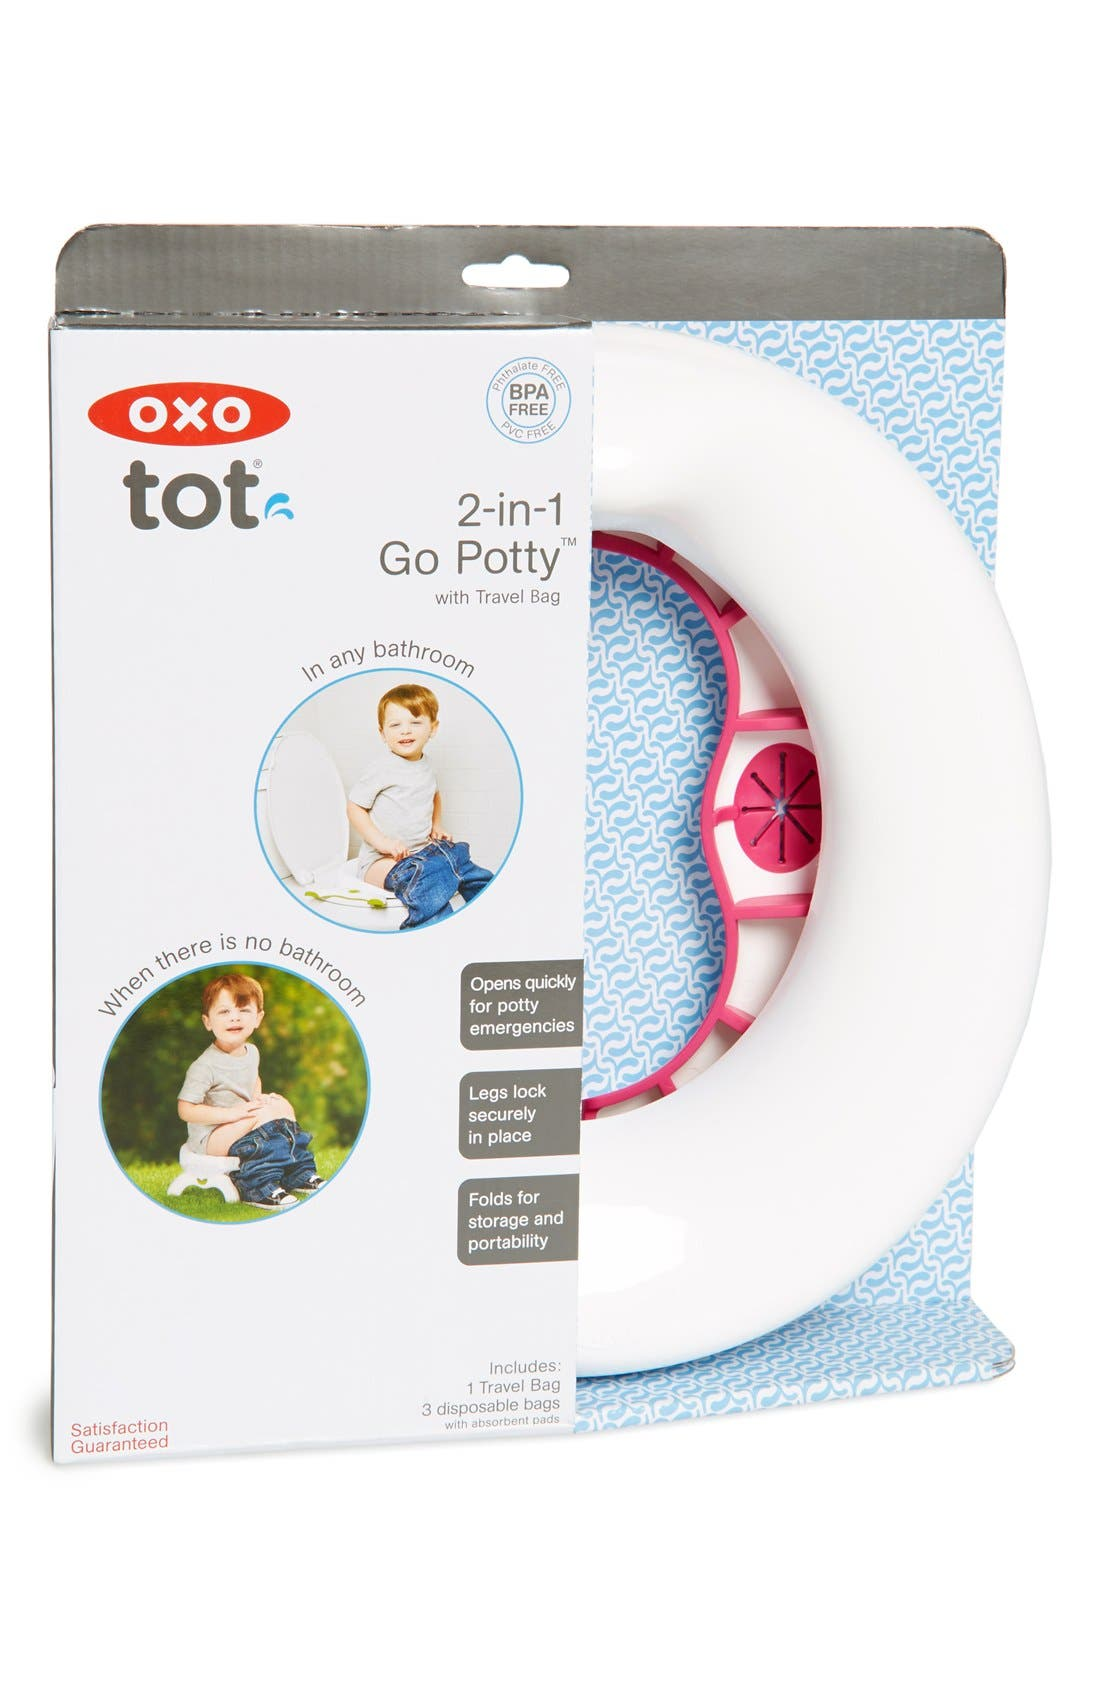 OXO Tot '2-in-1 Go Potty' Portable Toilet Set & Travel Bag